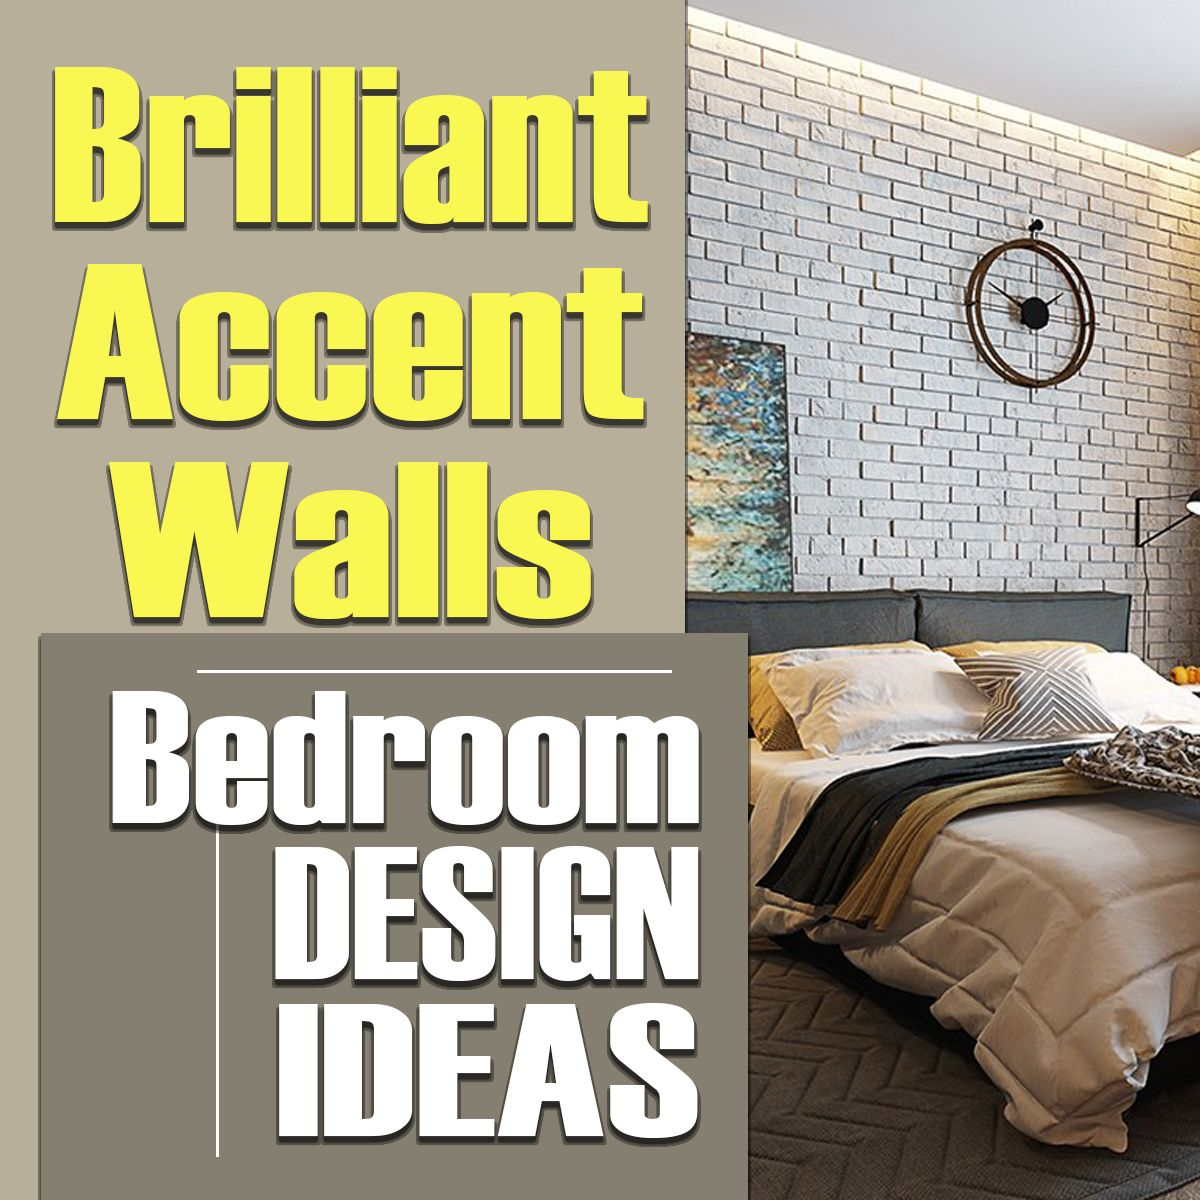 Pin by HomeDesign.HanD on Bedrooms With Accent Walls | Pinterest ...